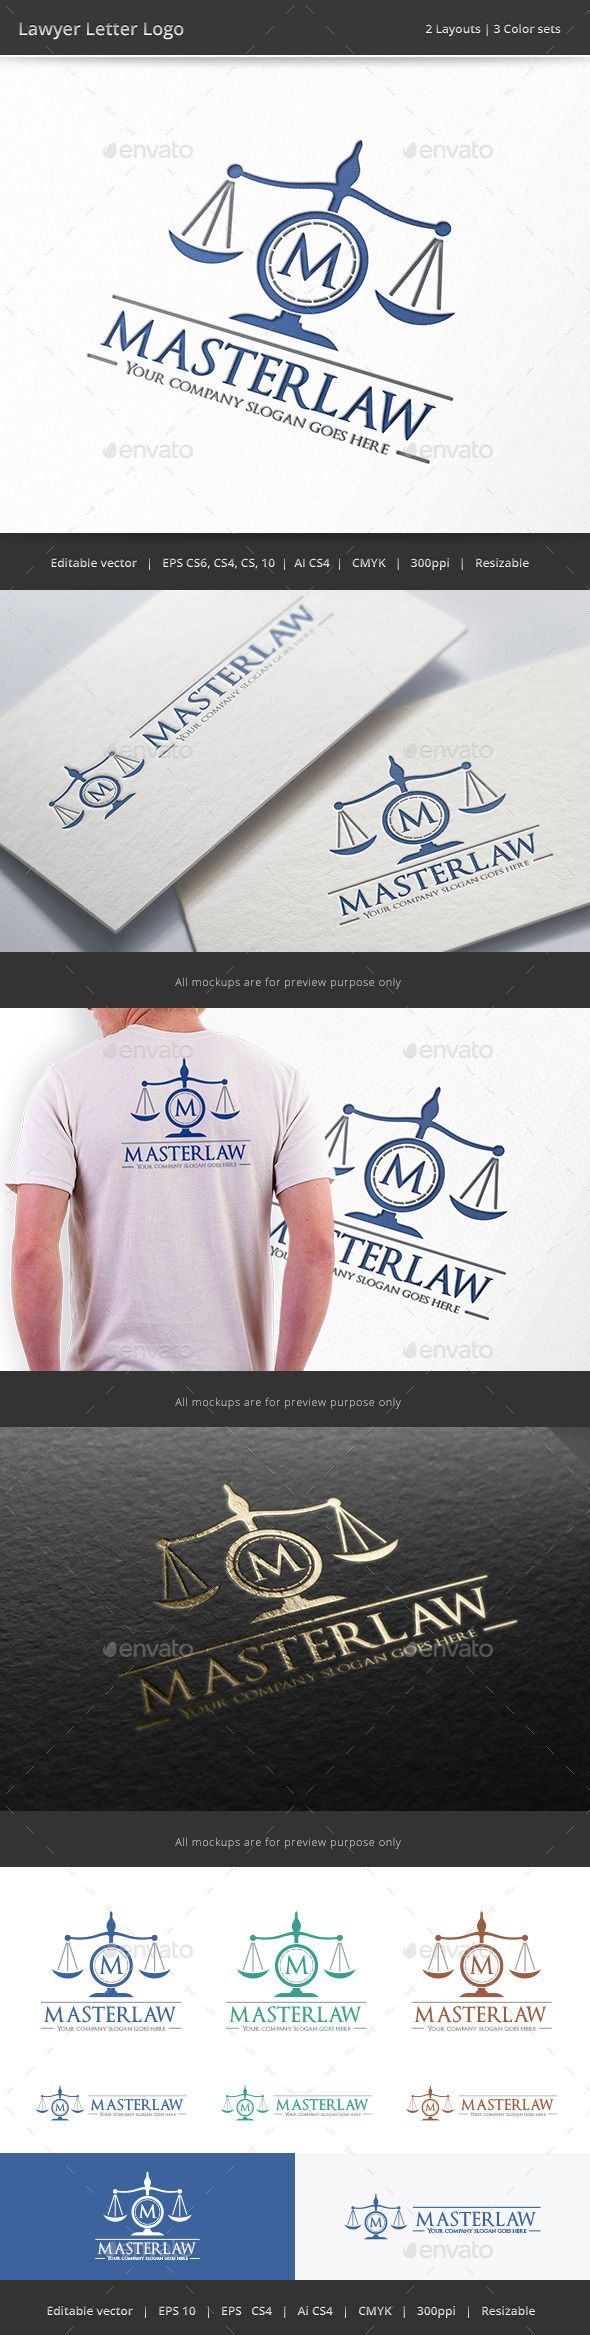 Lawyer Letter Logo EPS Template u2022